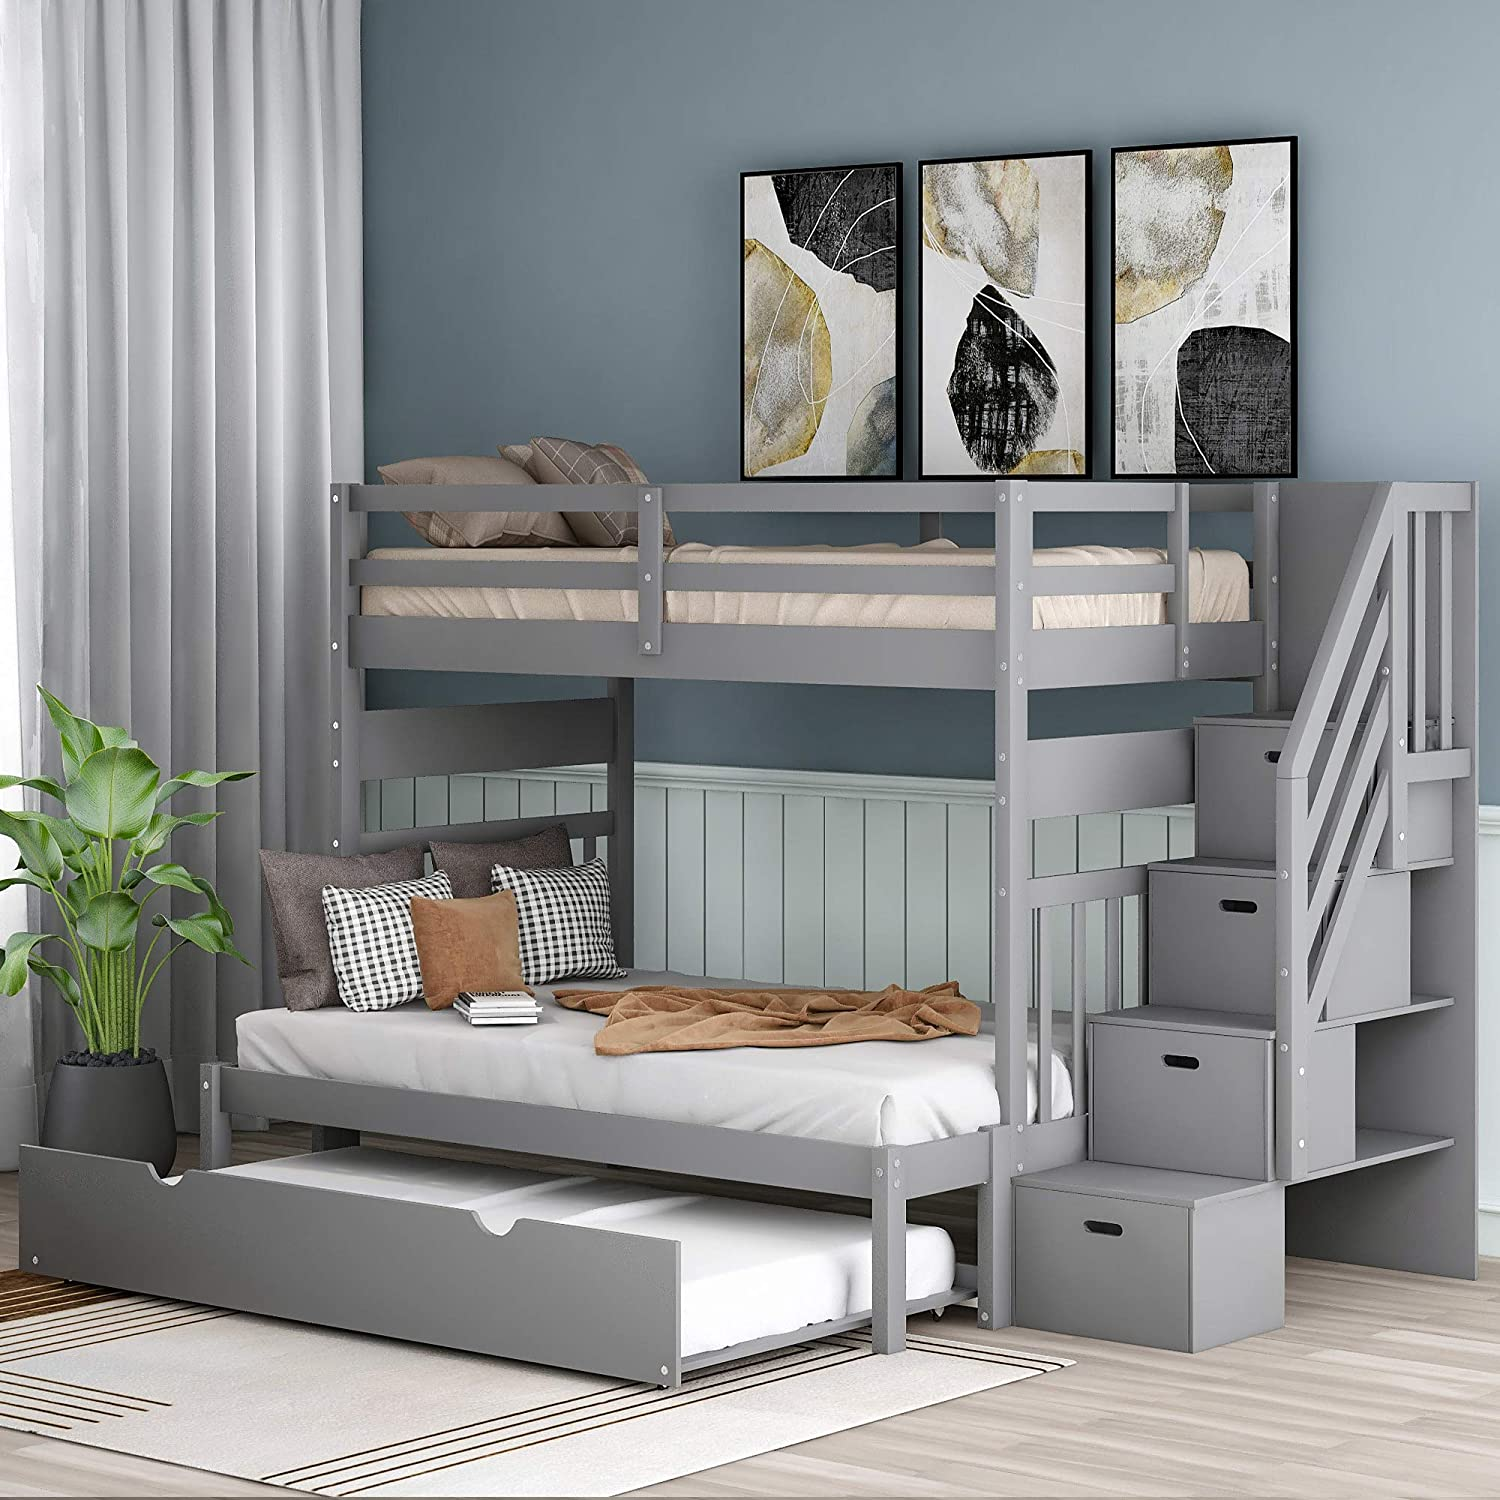 Buy Harper Bright Designs Stairway Twin Over Twin Full Bunk Bed With Twin Size Trundle And Drawers Solid Wood Bunk Bed Staircase Can Be Placed On The Left Or Right Side Grey